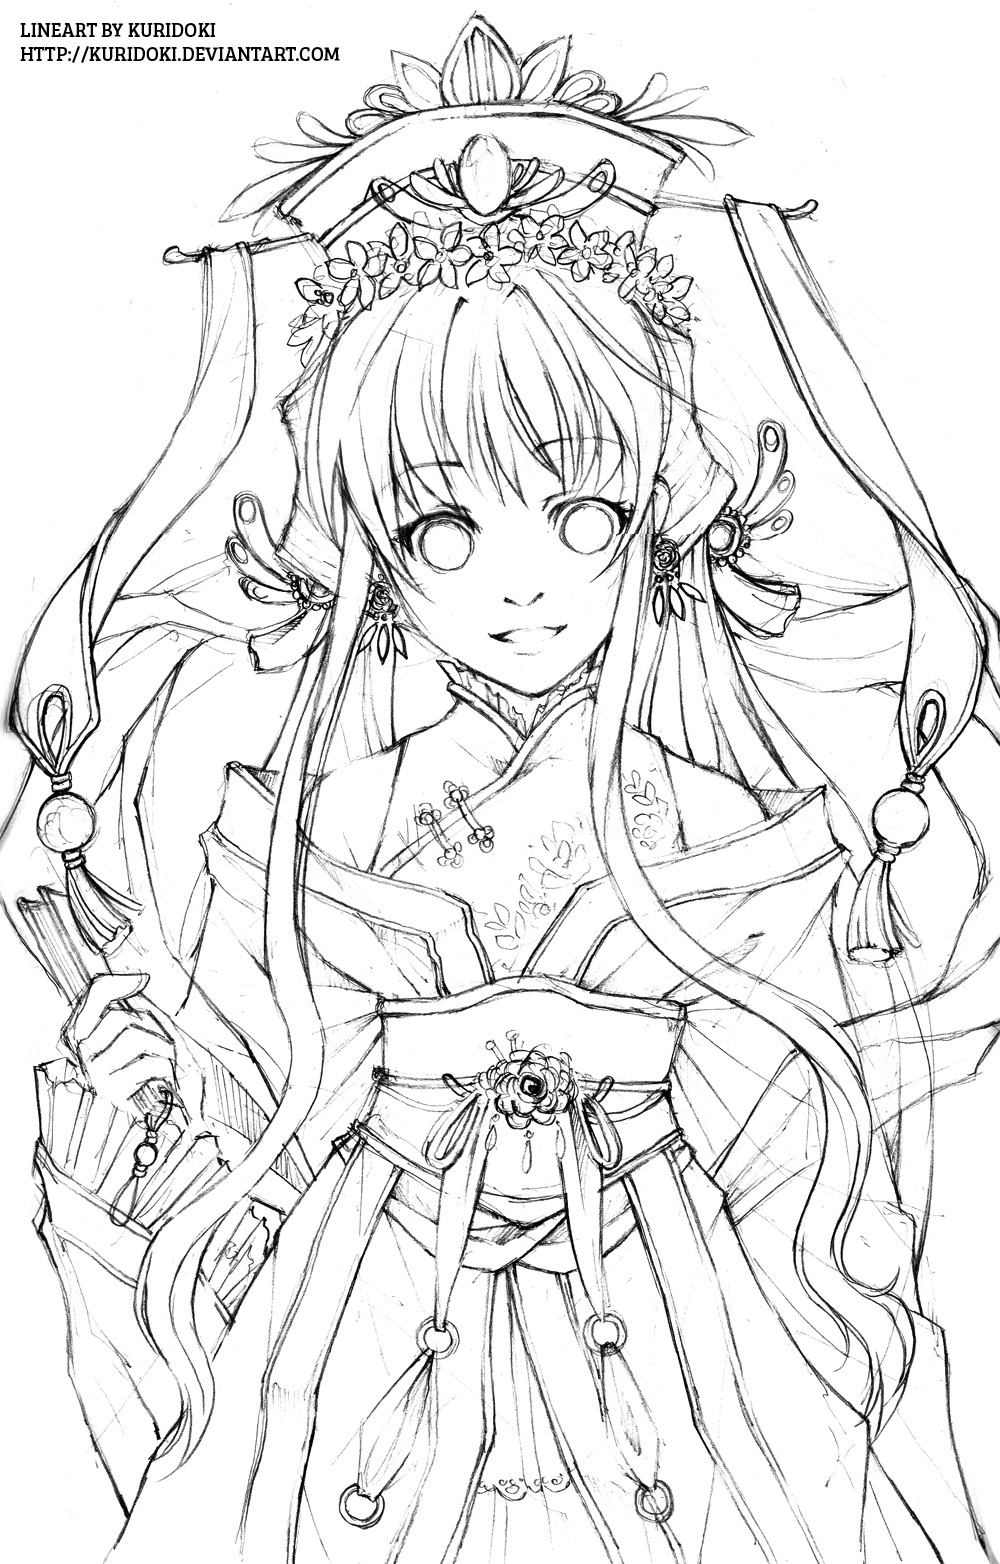 Line Drawing Of Artist : Hana hime lineart by kuridoki on deviantart